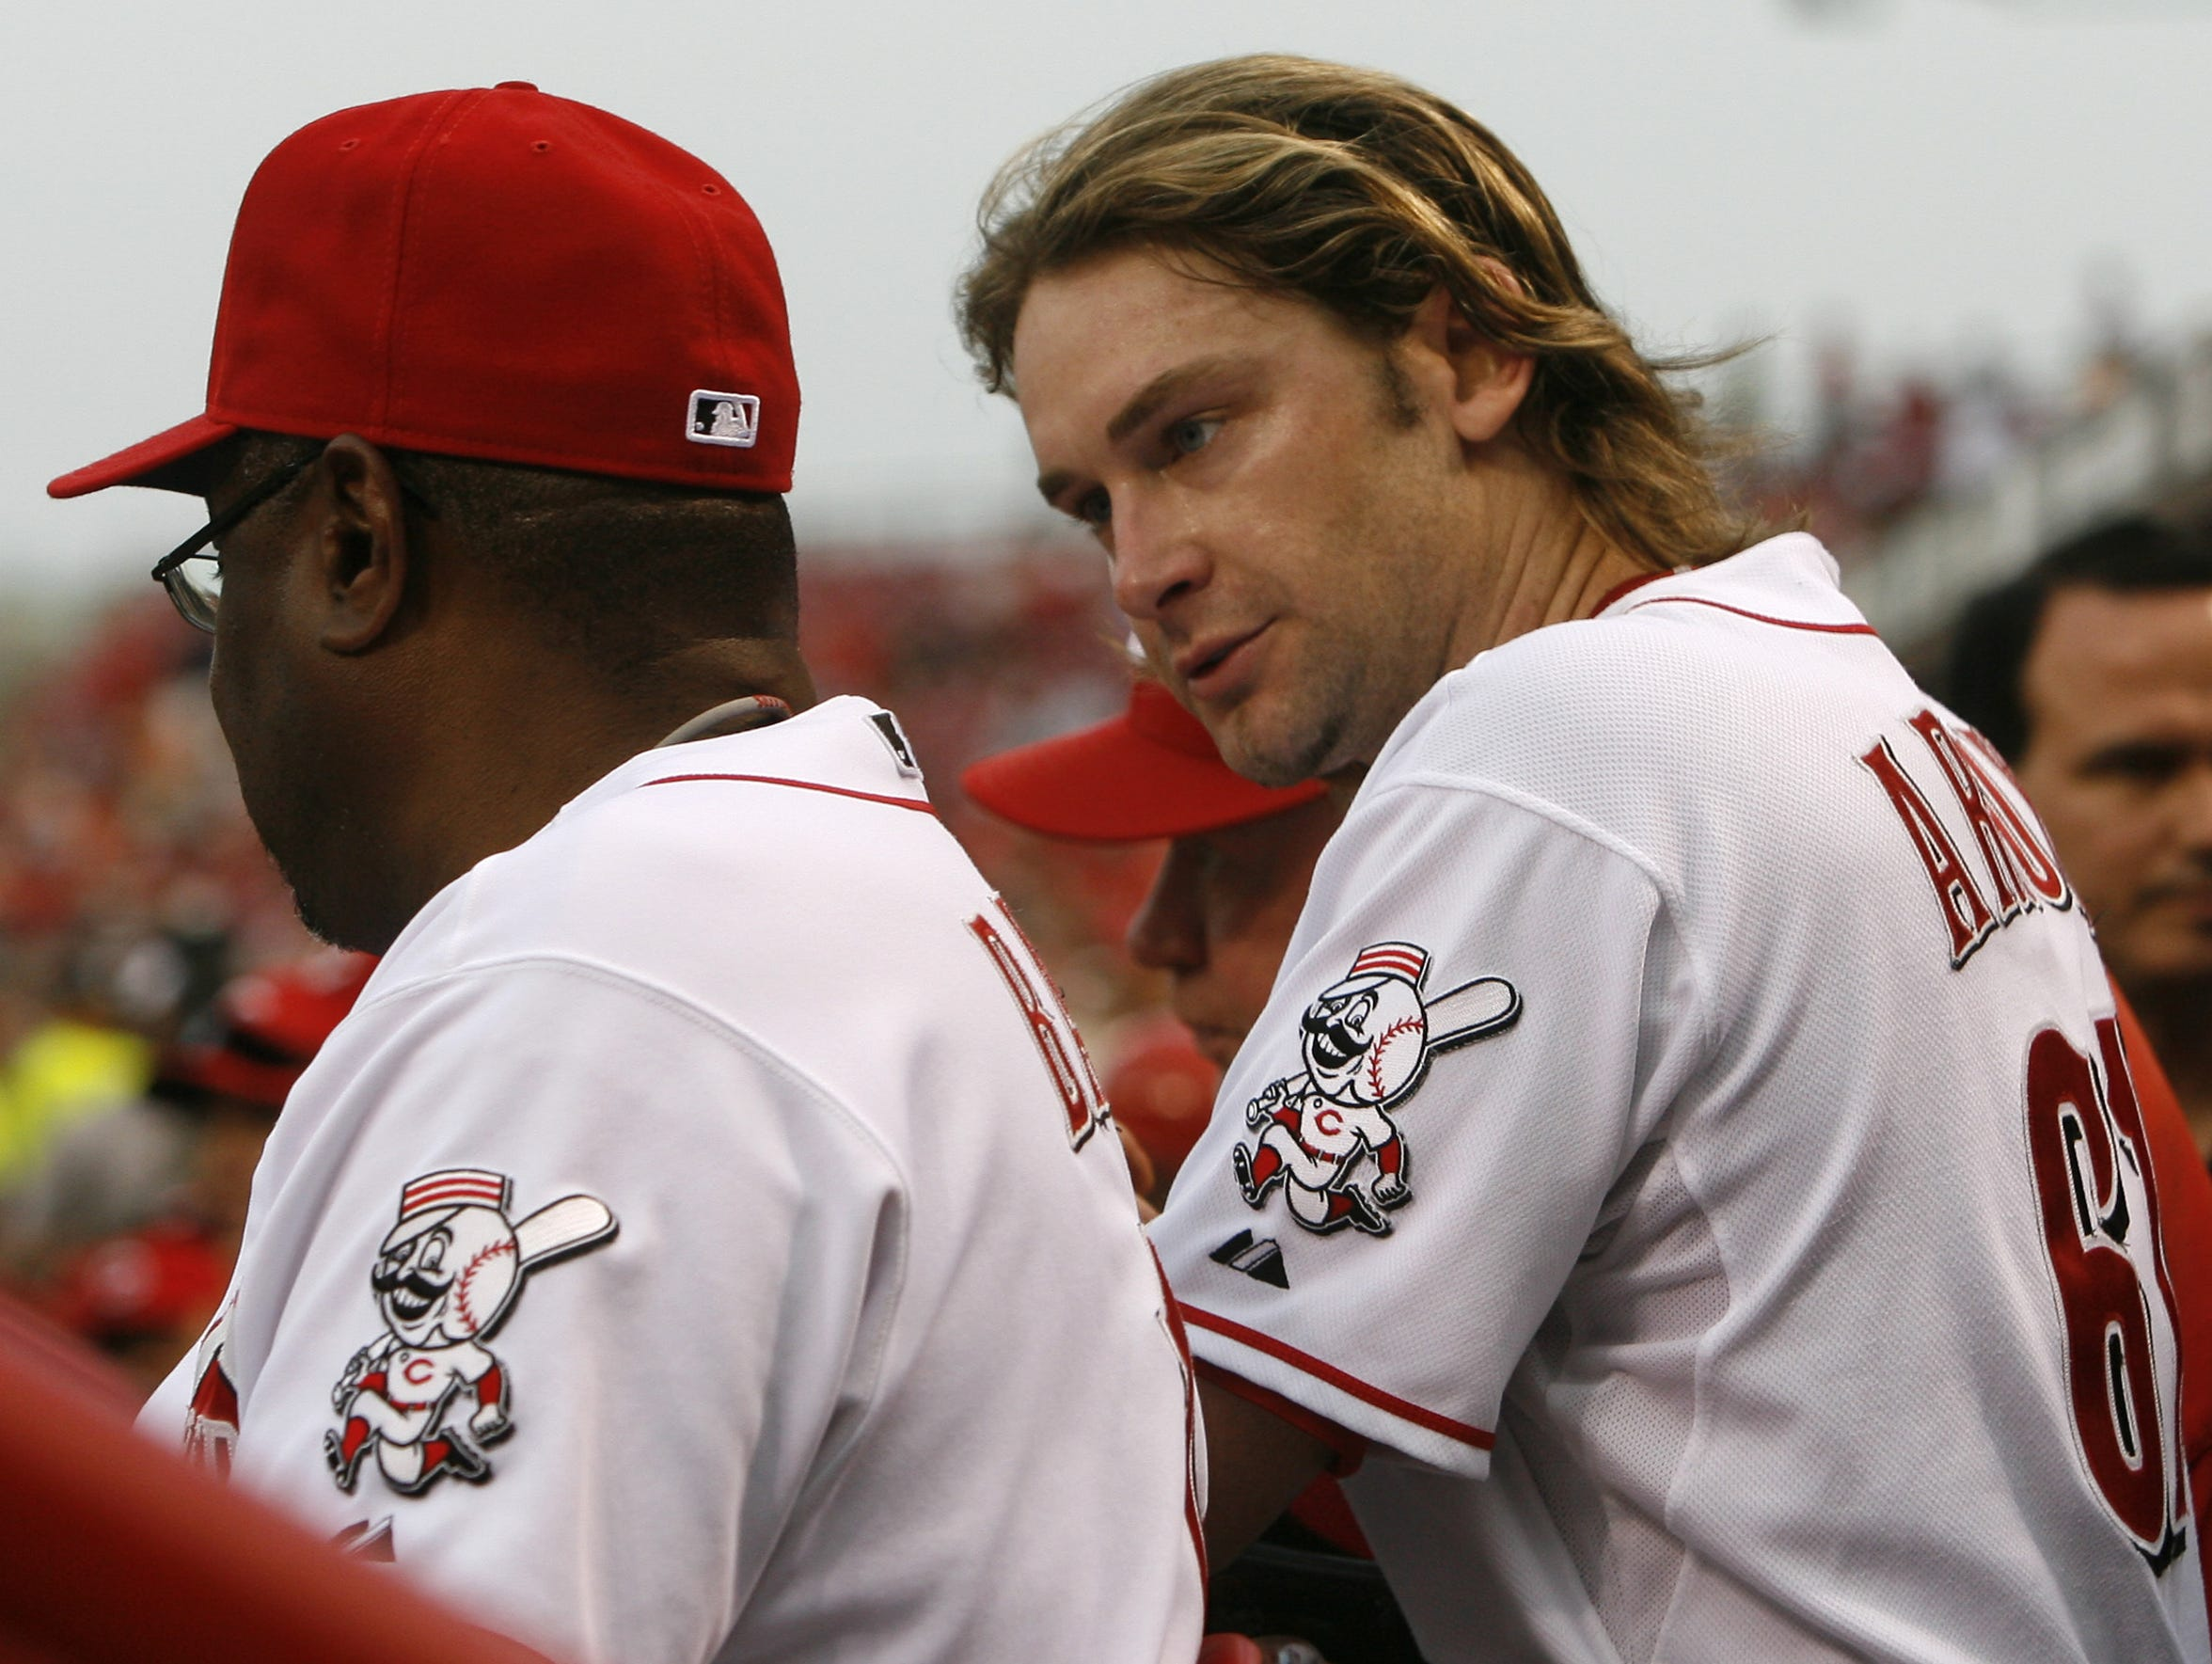 In this June 12, 2008 file photo, Cincinnati Reds pitcher Bronson Arroyo, right, talks with manager Dusty Baker during a baseball game against the St. Louis Cardinals, in Cincinnati. Arroyo has won his last five starts and hopes to remain with the Reds next season. (AP Photo/David Kohl)